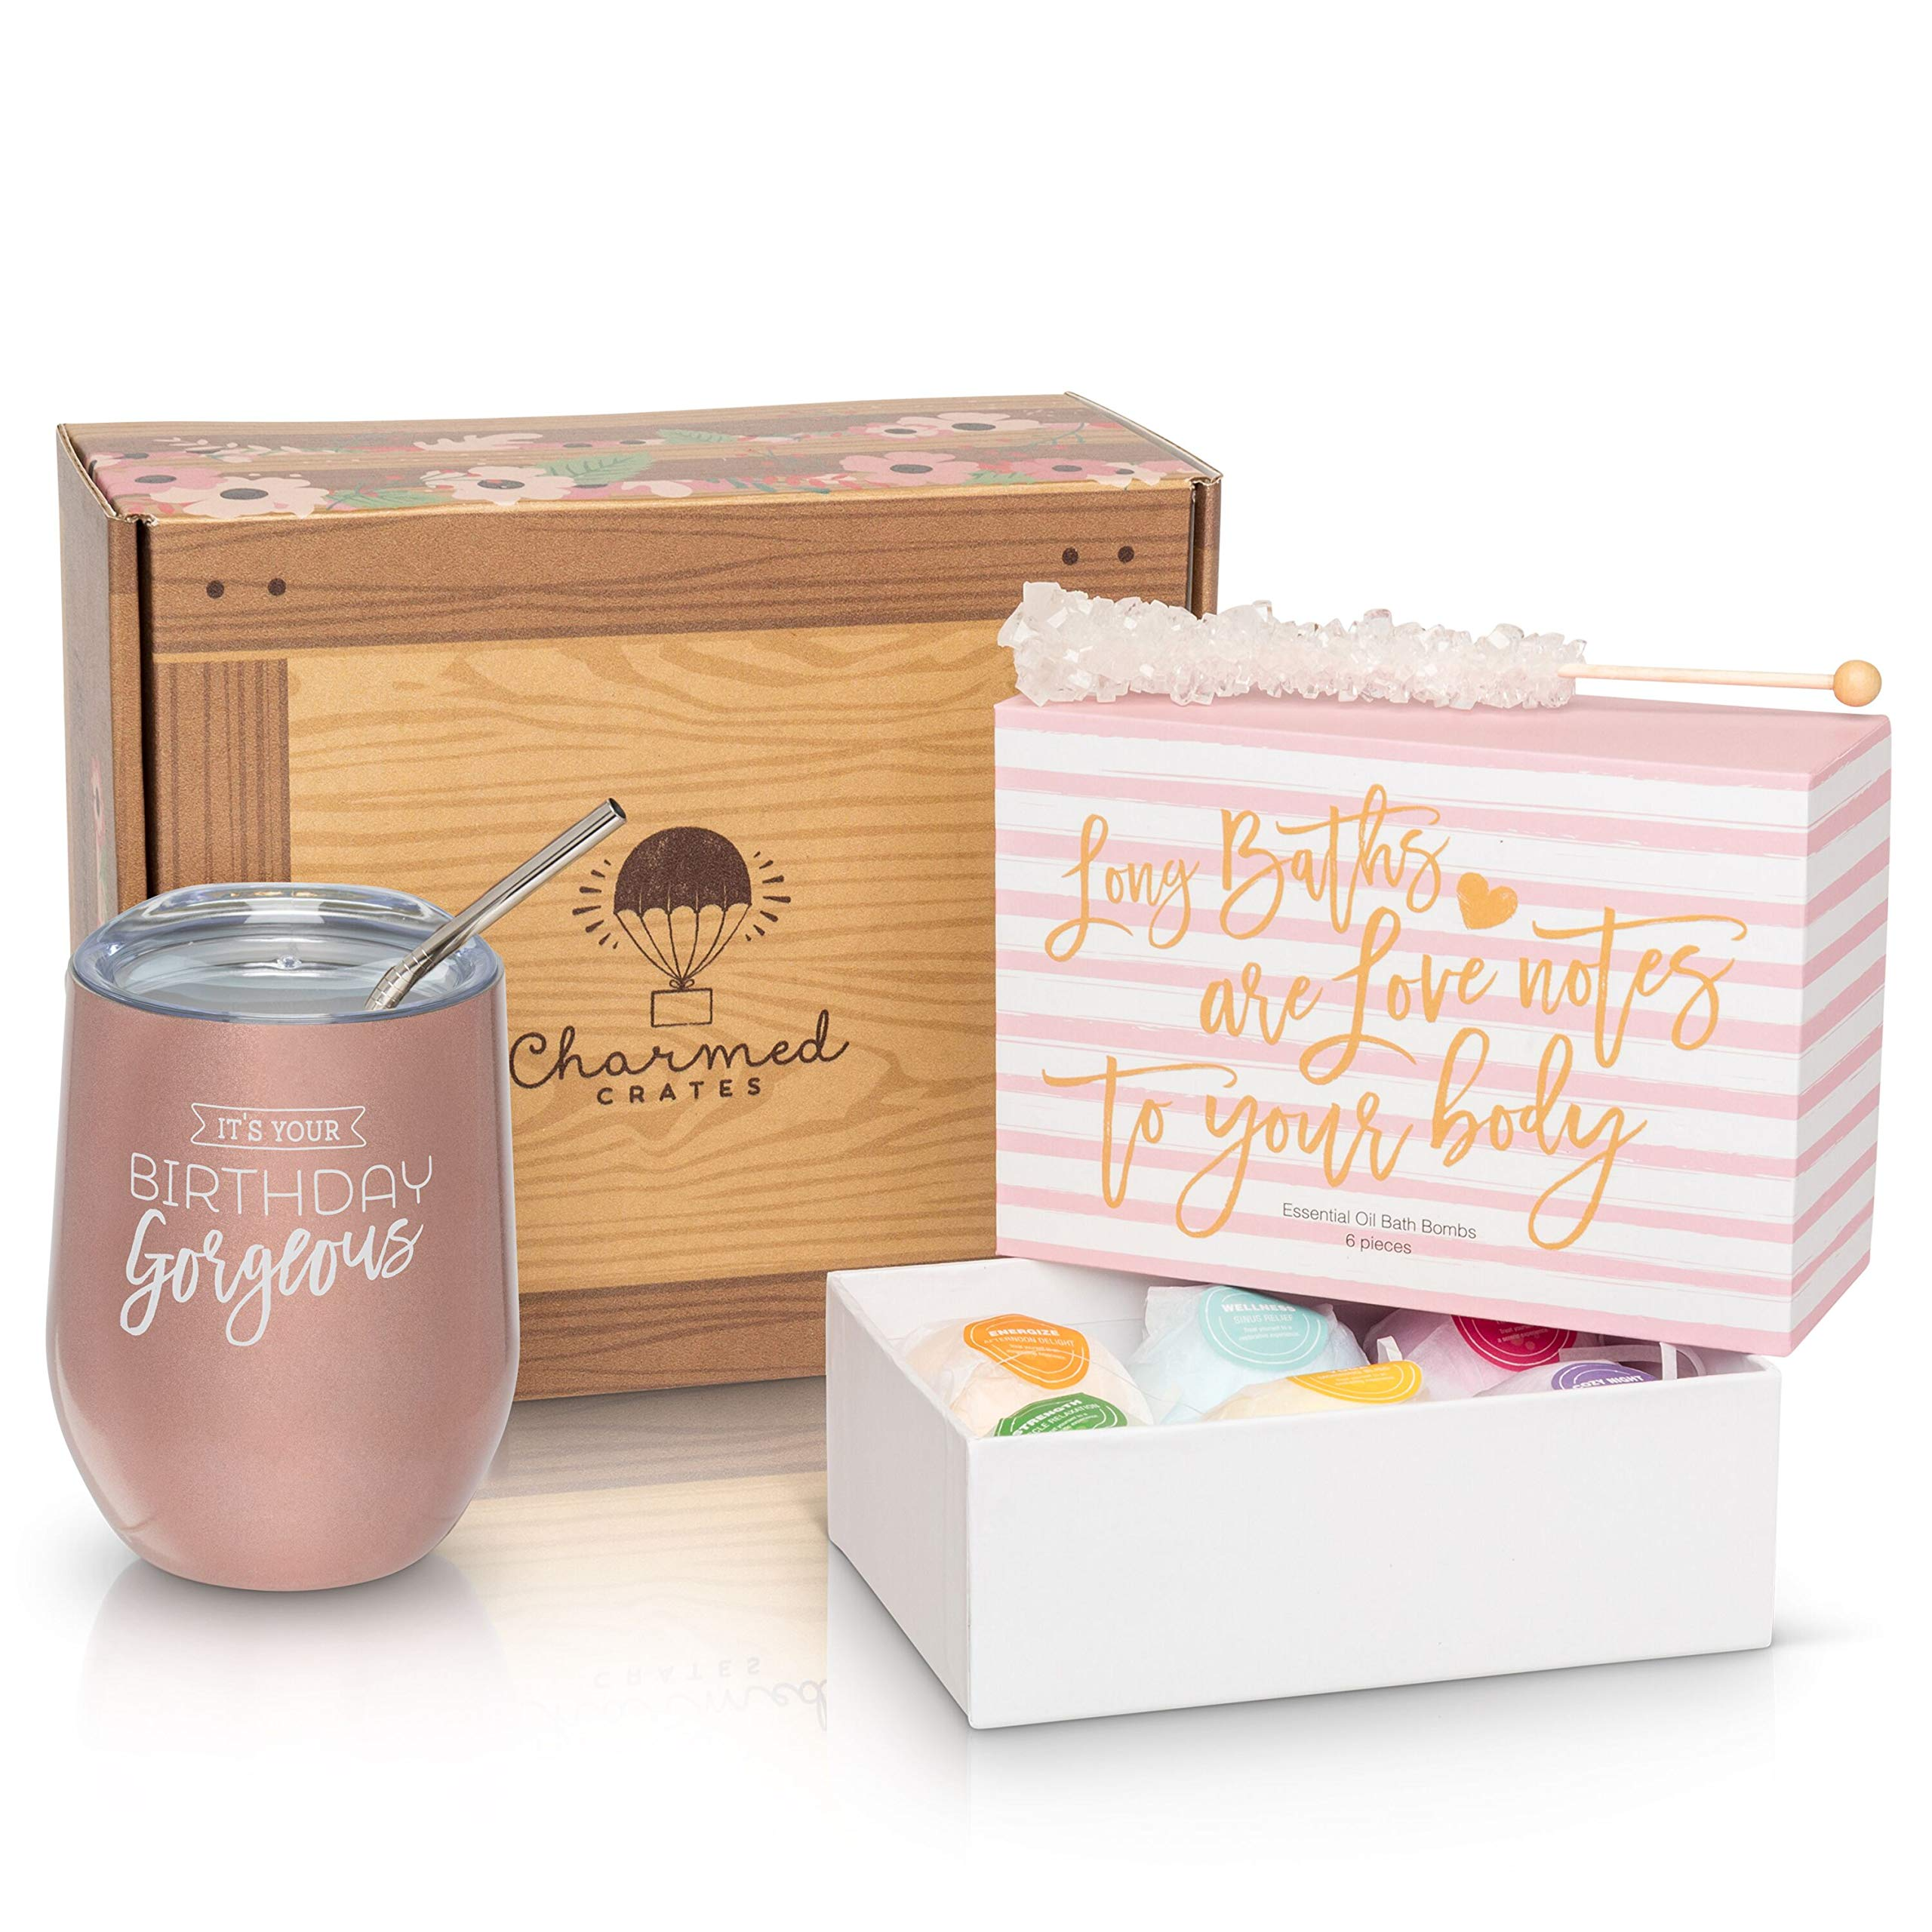 Happy Birthday Gift for Women: Stainless Steel Tumbler, Bath Bomb Set, & Candy Box for Her